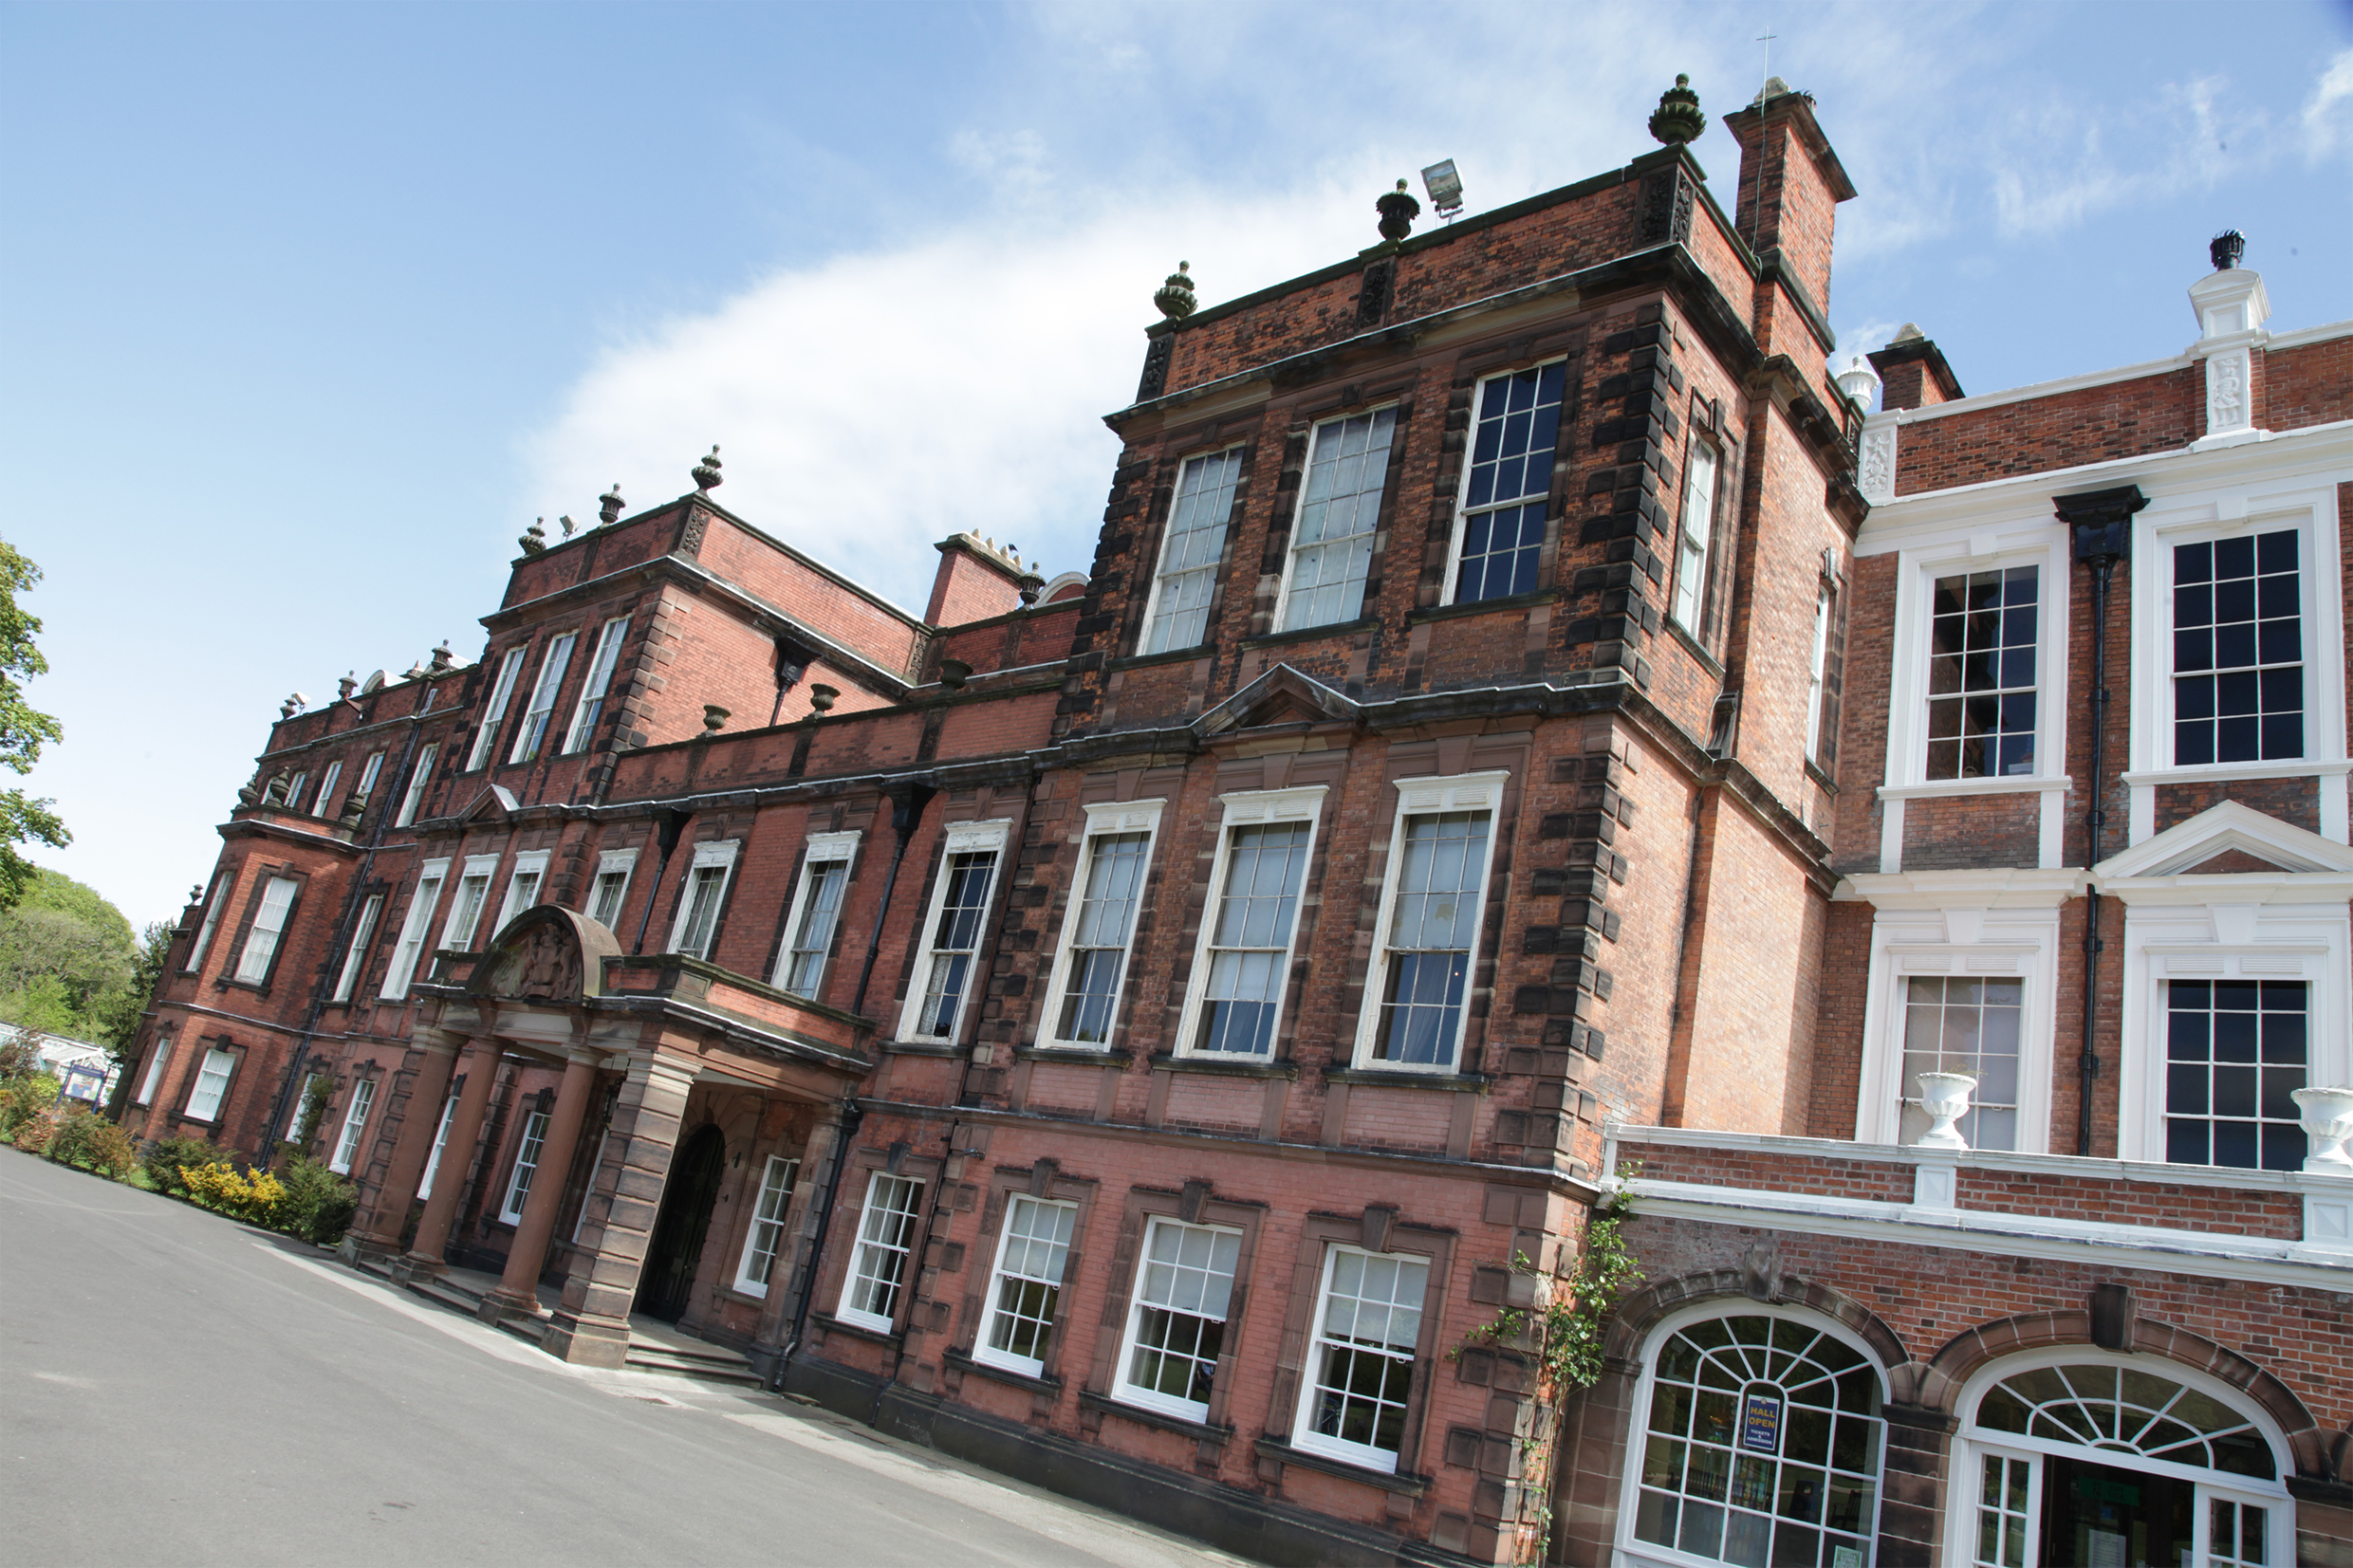 A Croxteth Hall in Liverpool